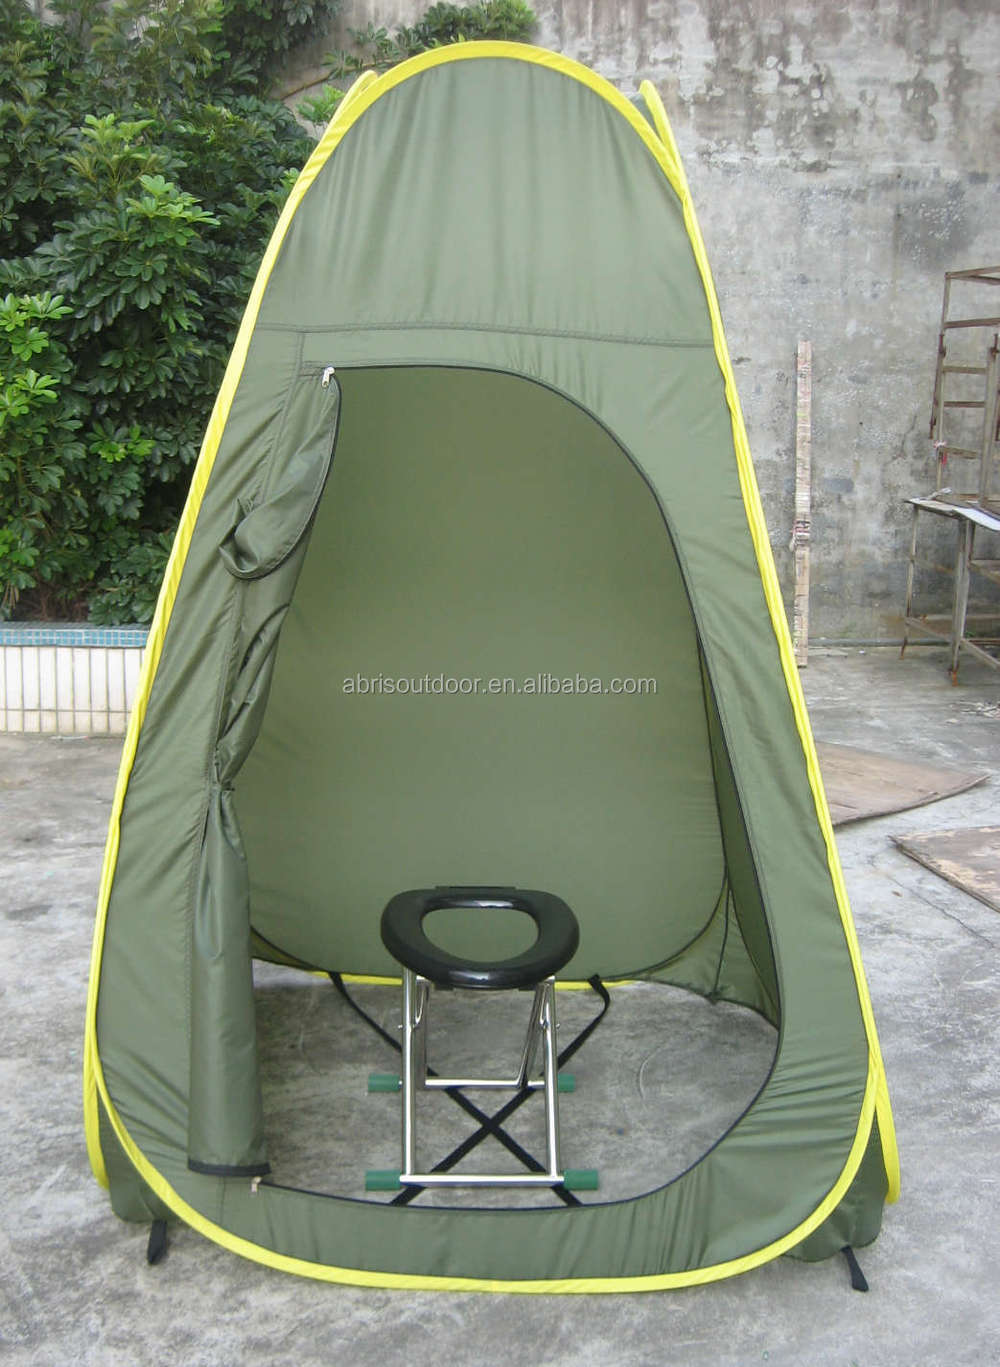 One minute easy up tent c&ing outdoor privacy room portable shower tent & One minute easy up tent camping outdoor privacy room portable ...